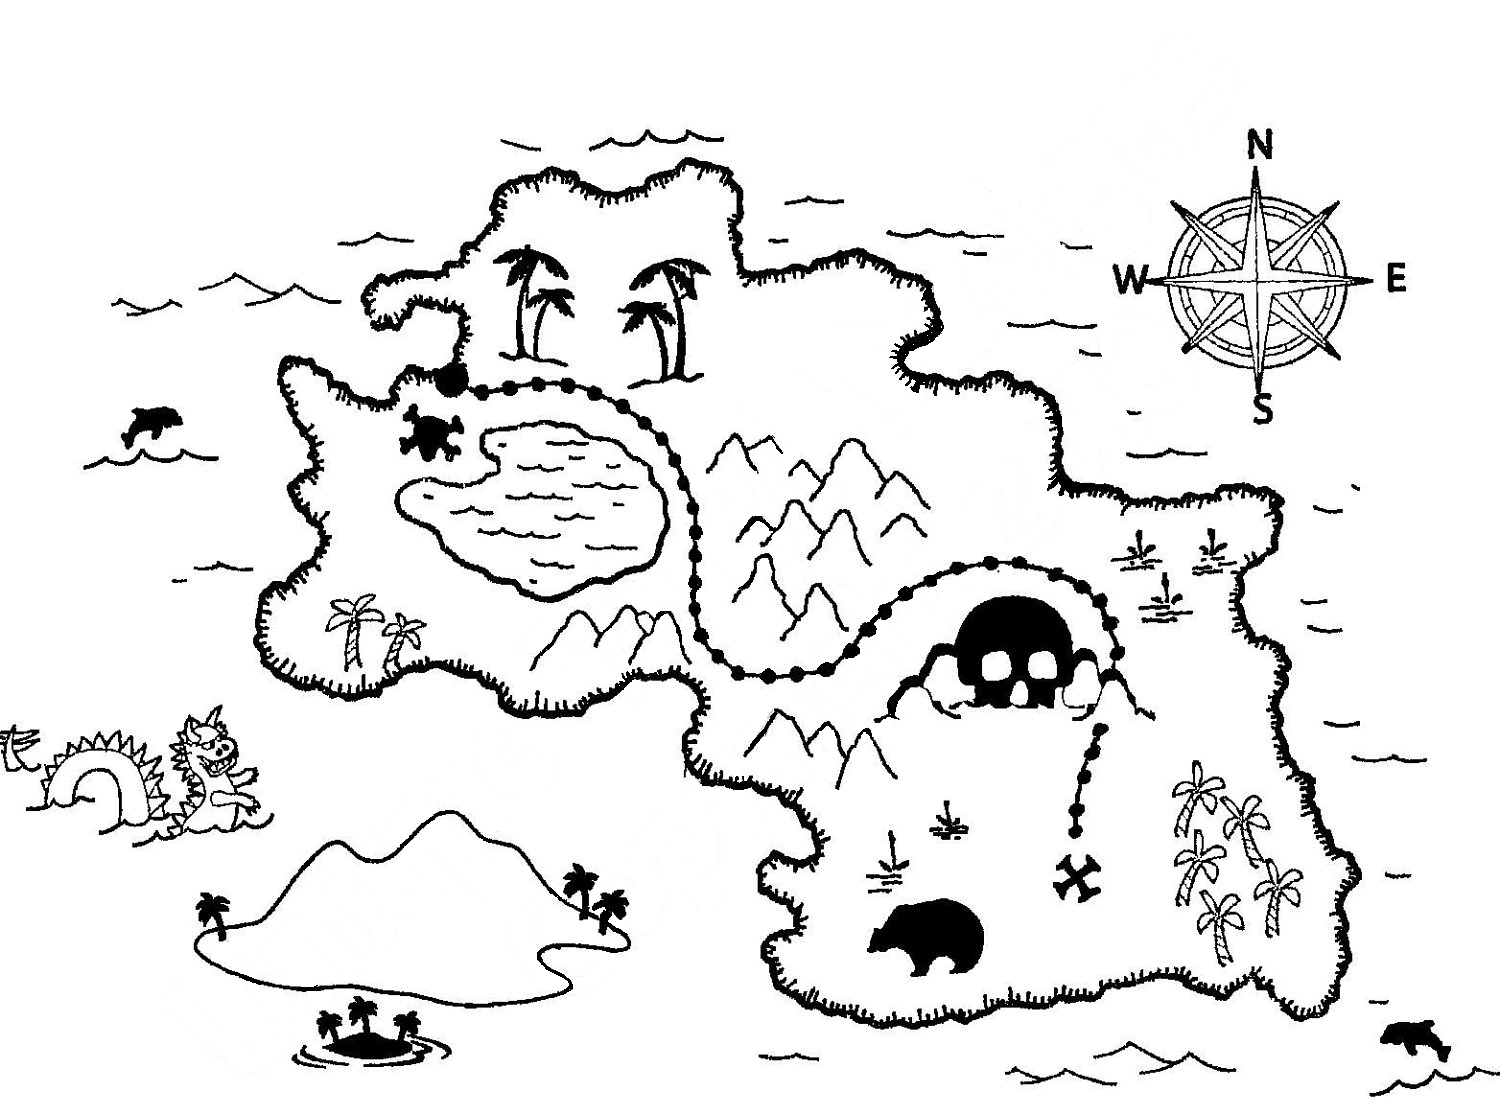 Pirate clipart black and white treasure map picture transparent stock Free Treasure Map Outline, Download Free Clip Art, Free Clip ... picture transparent stock